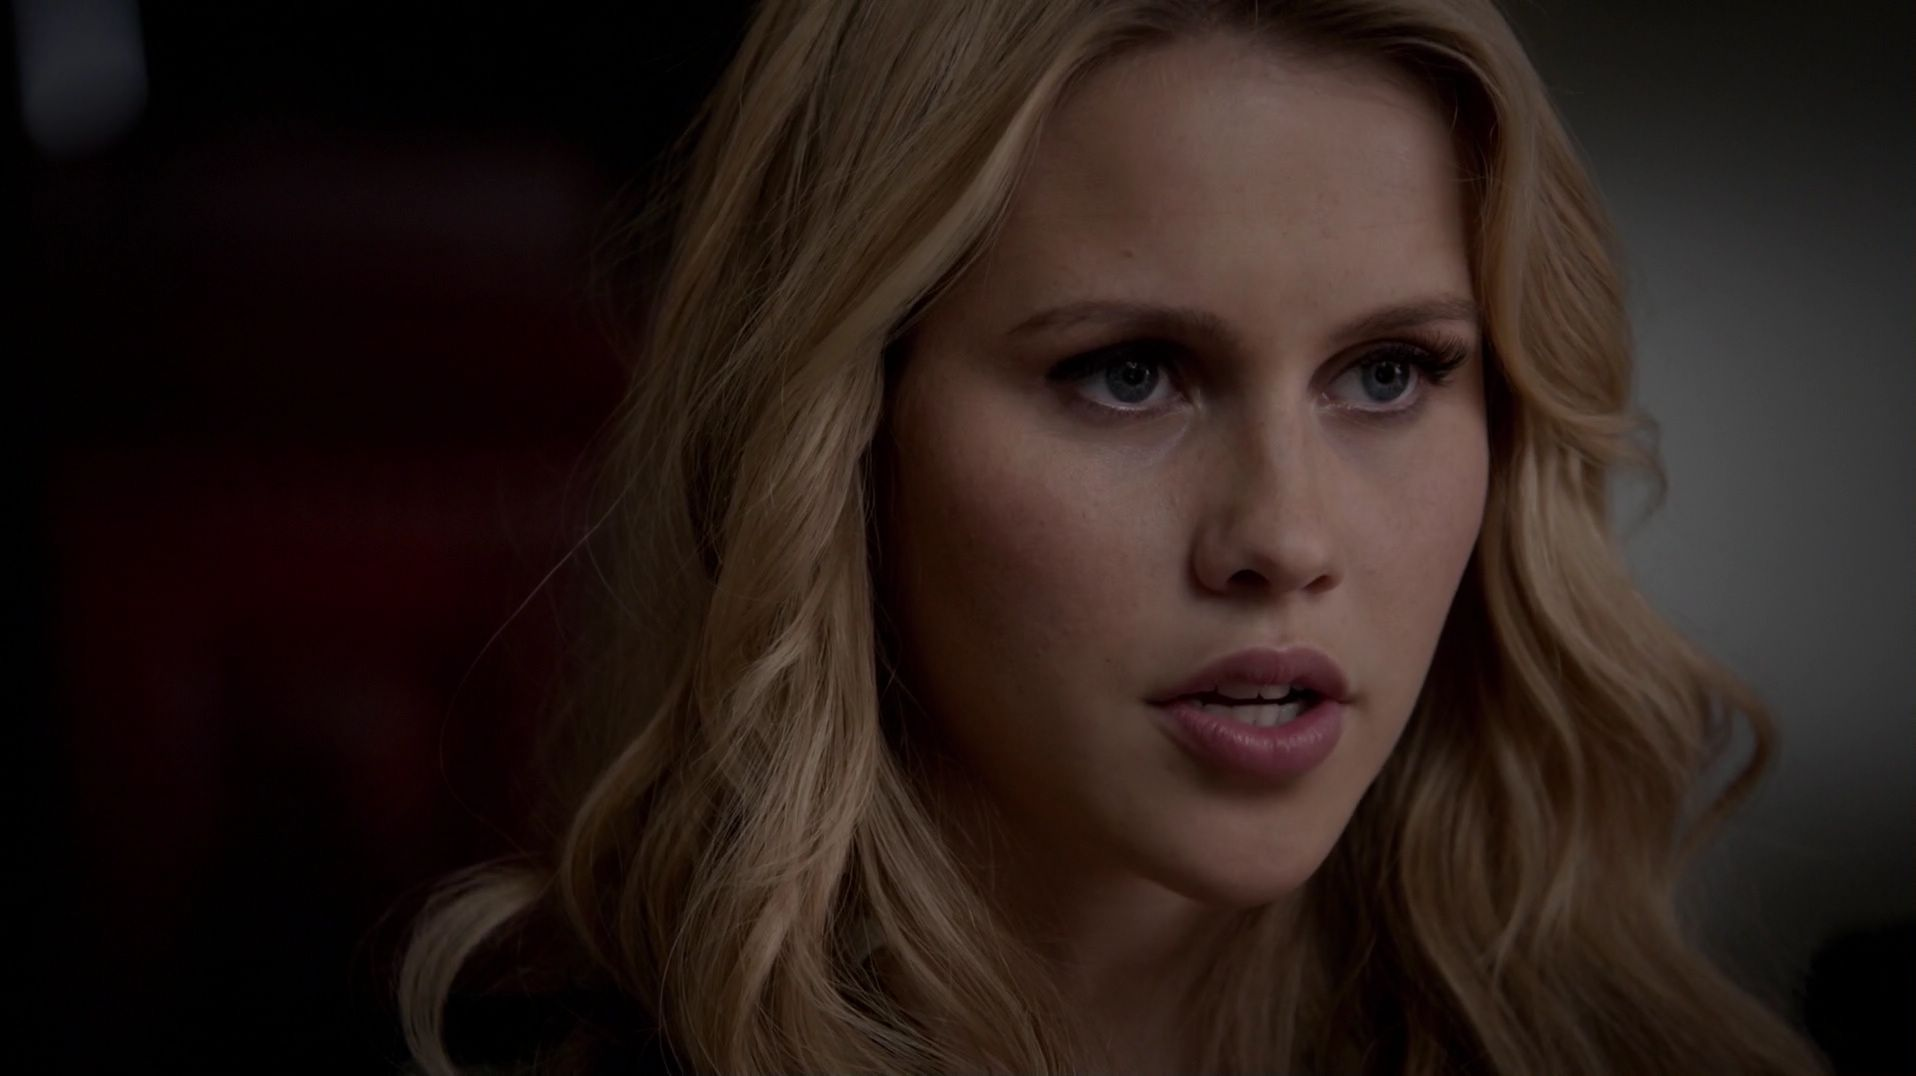 rebekah mikaelson how tall